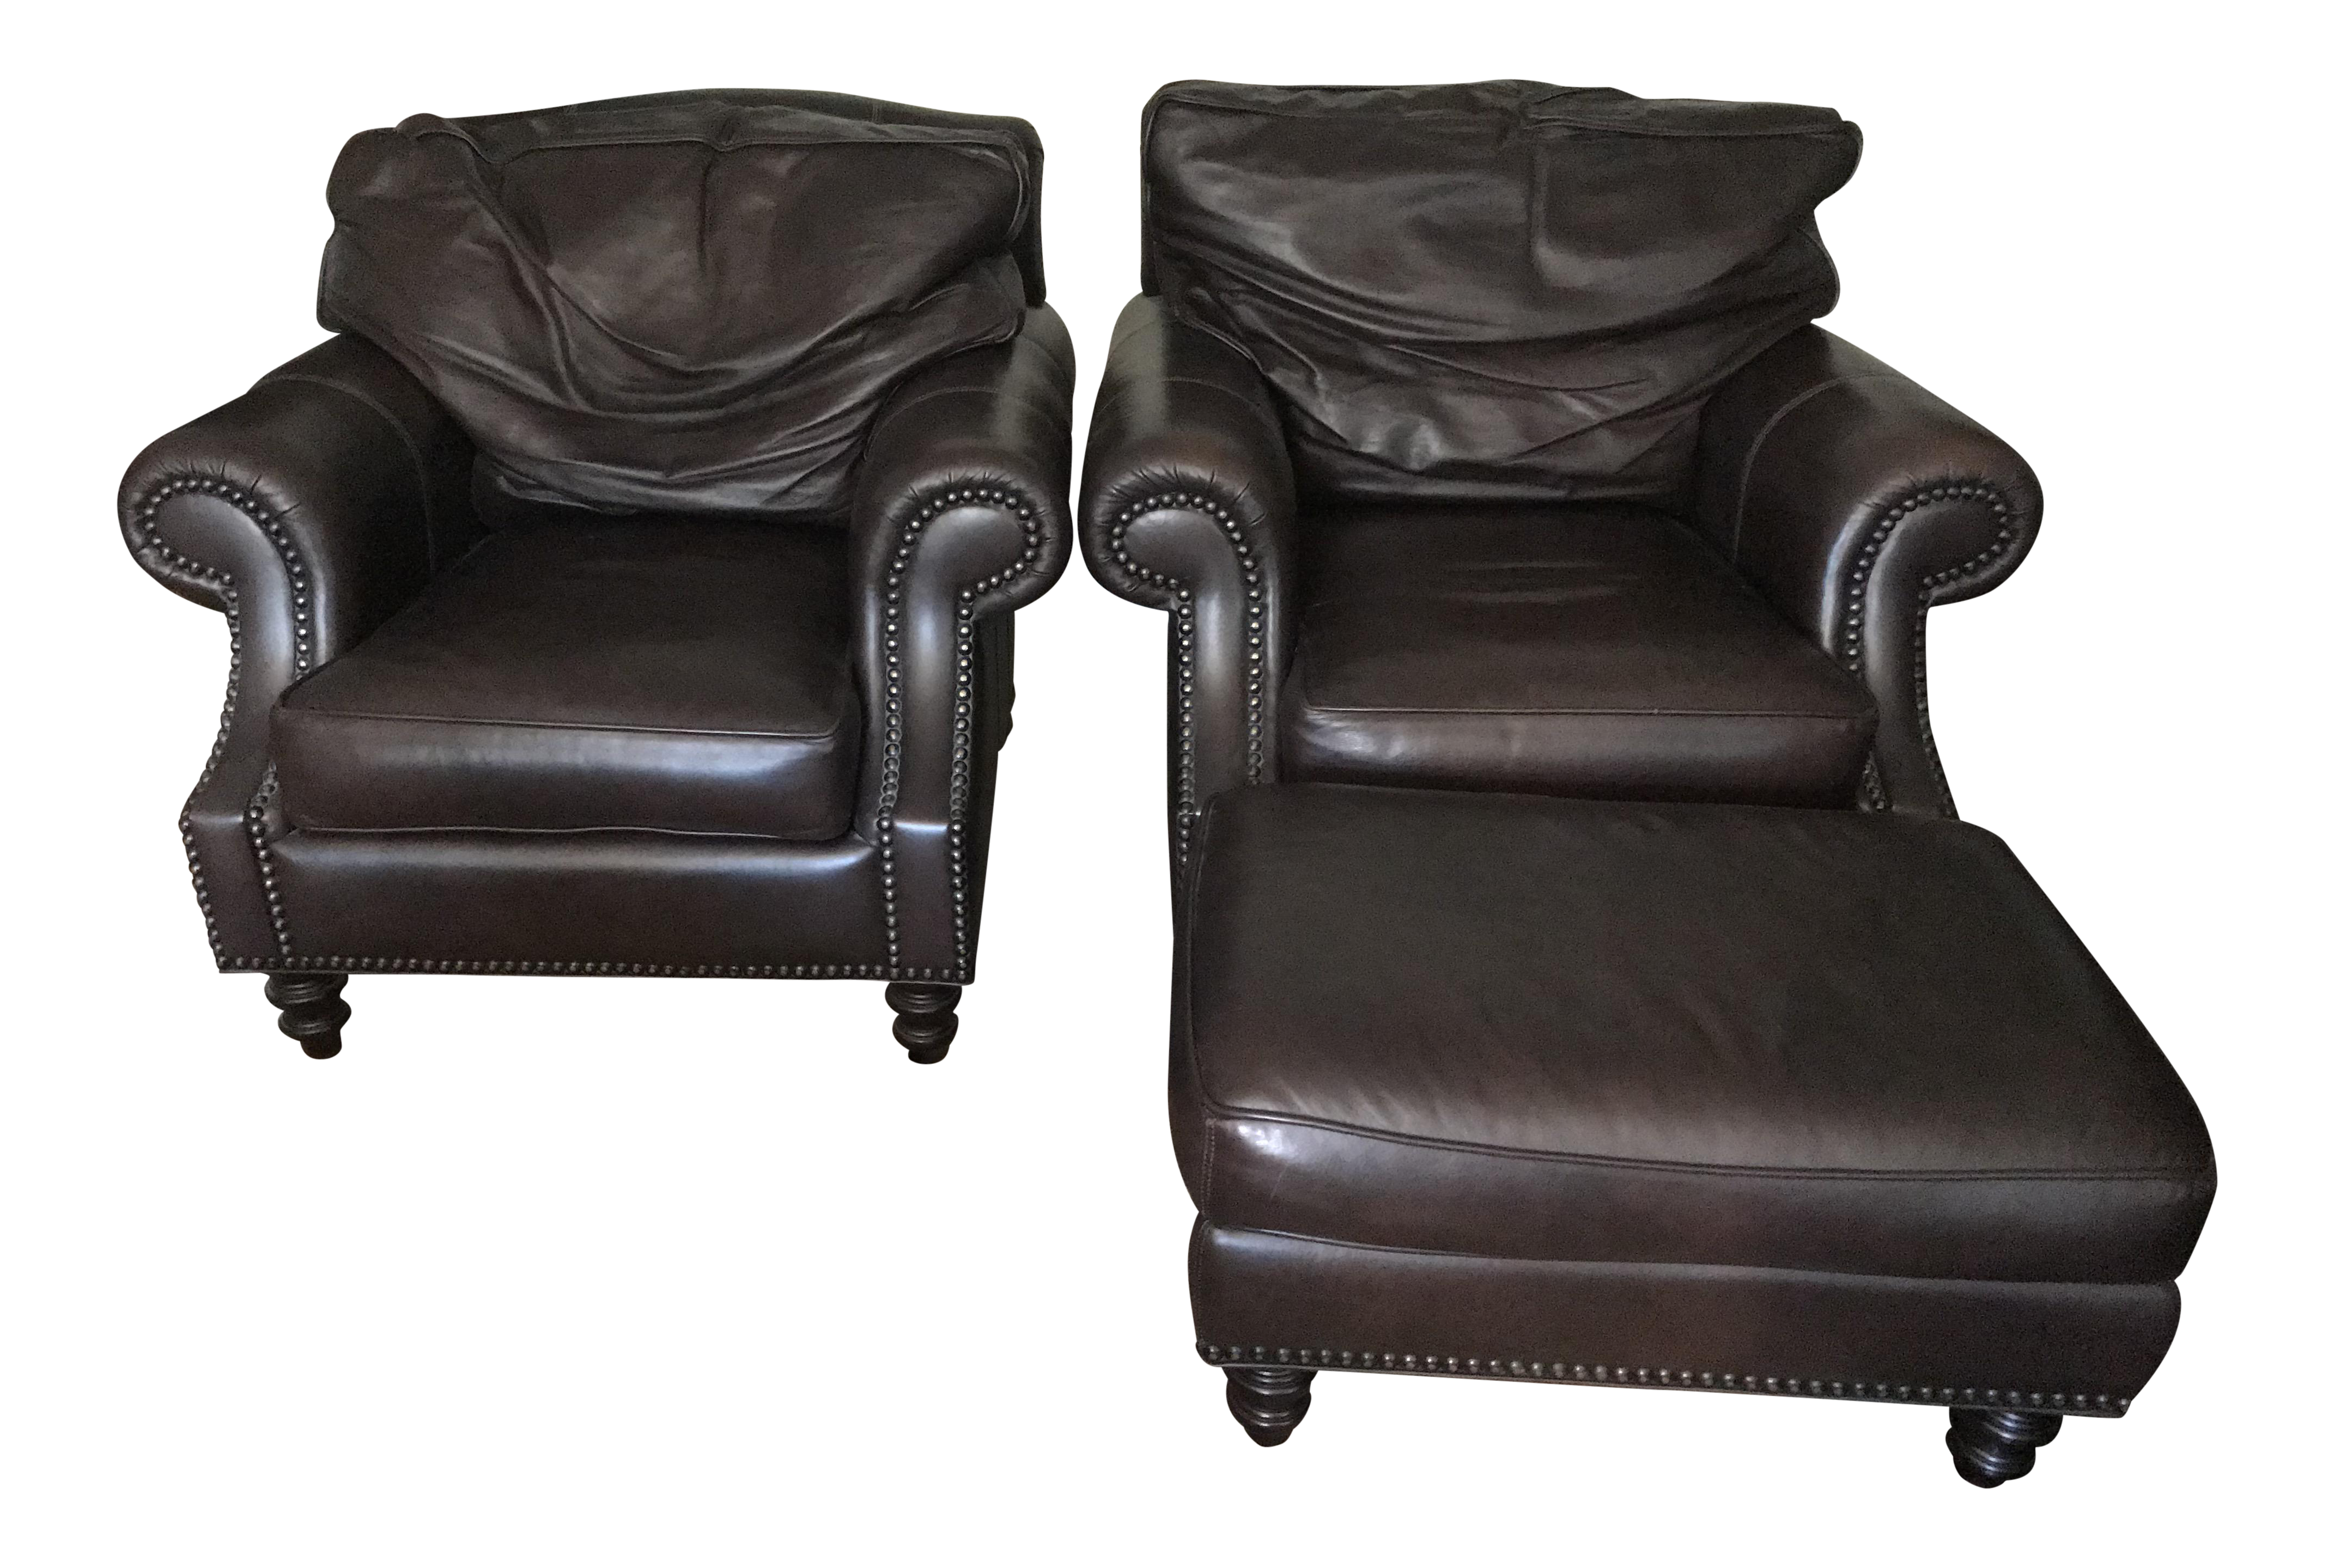 Phenomenal Our House Designs Leather Club Chairs With Ottomans Ncnpc Chair Design For Home Ncnpcorg